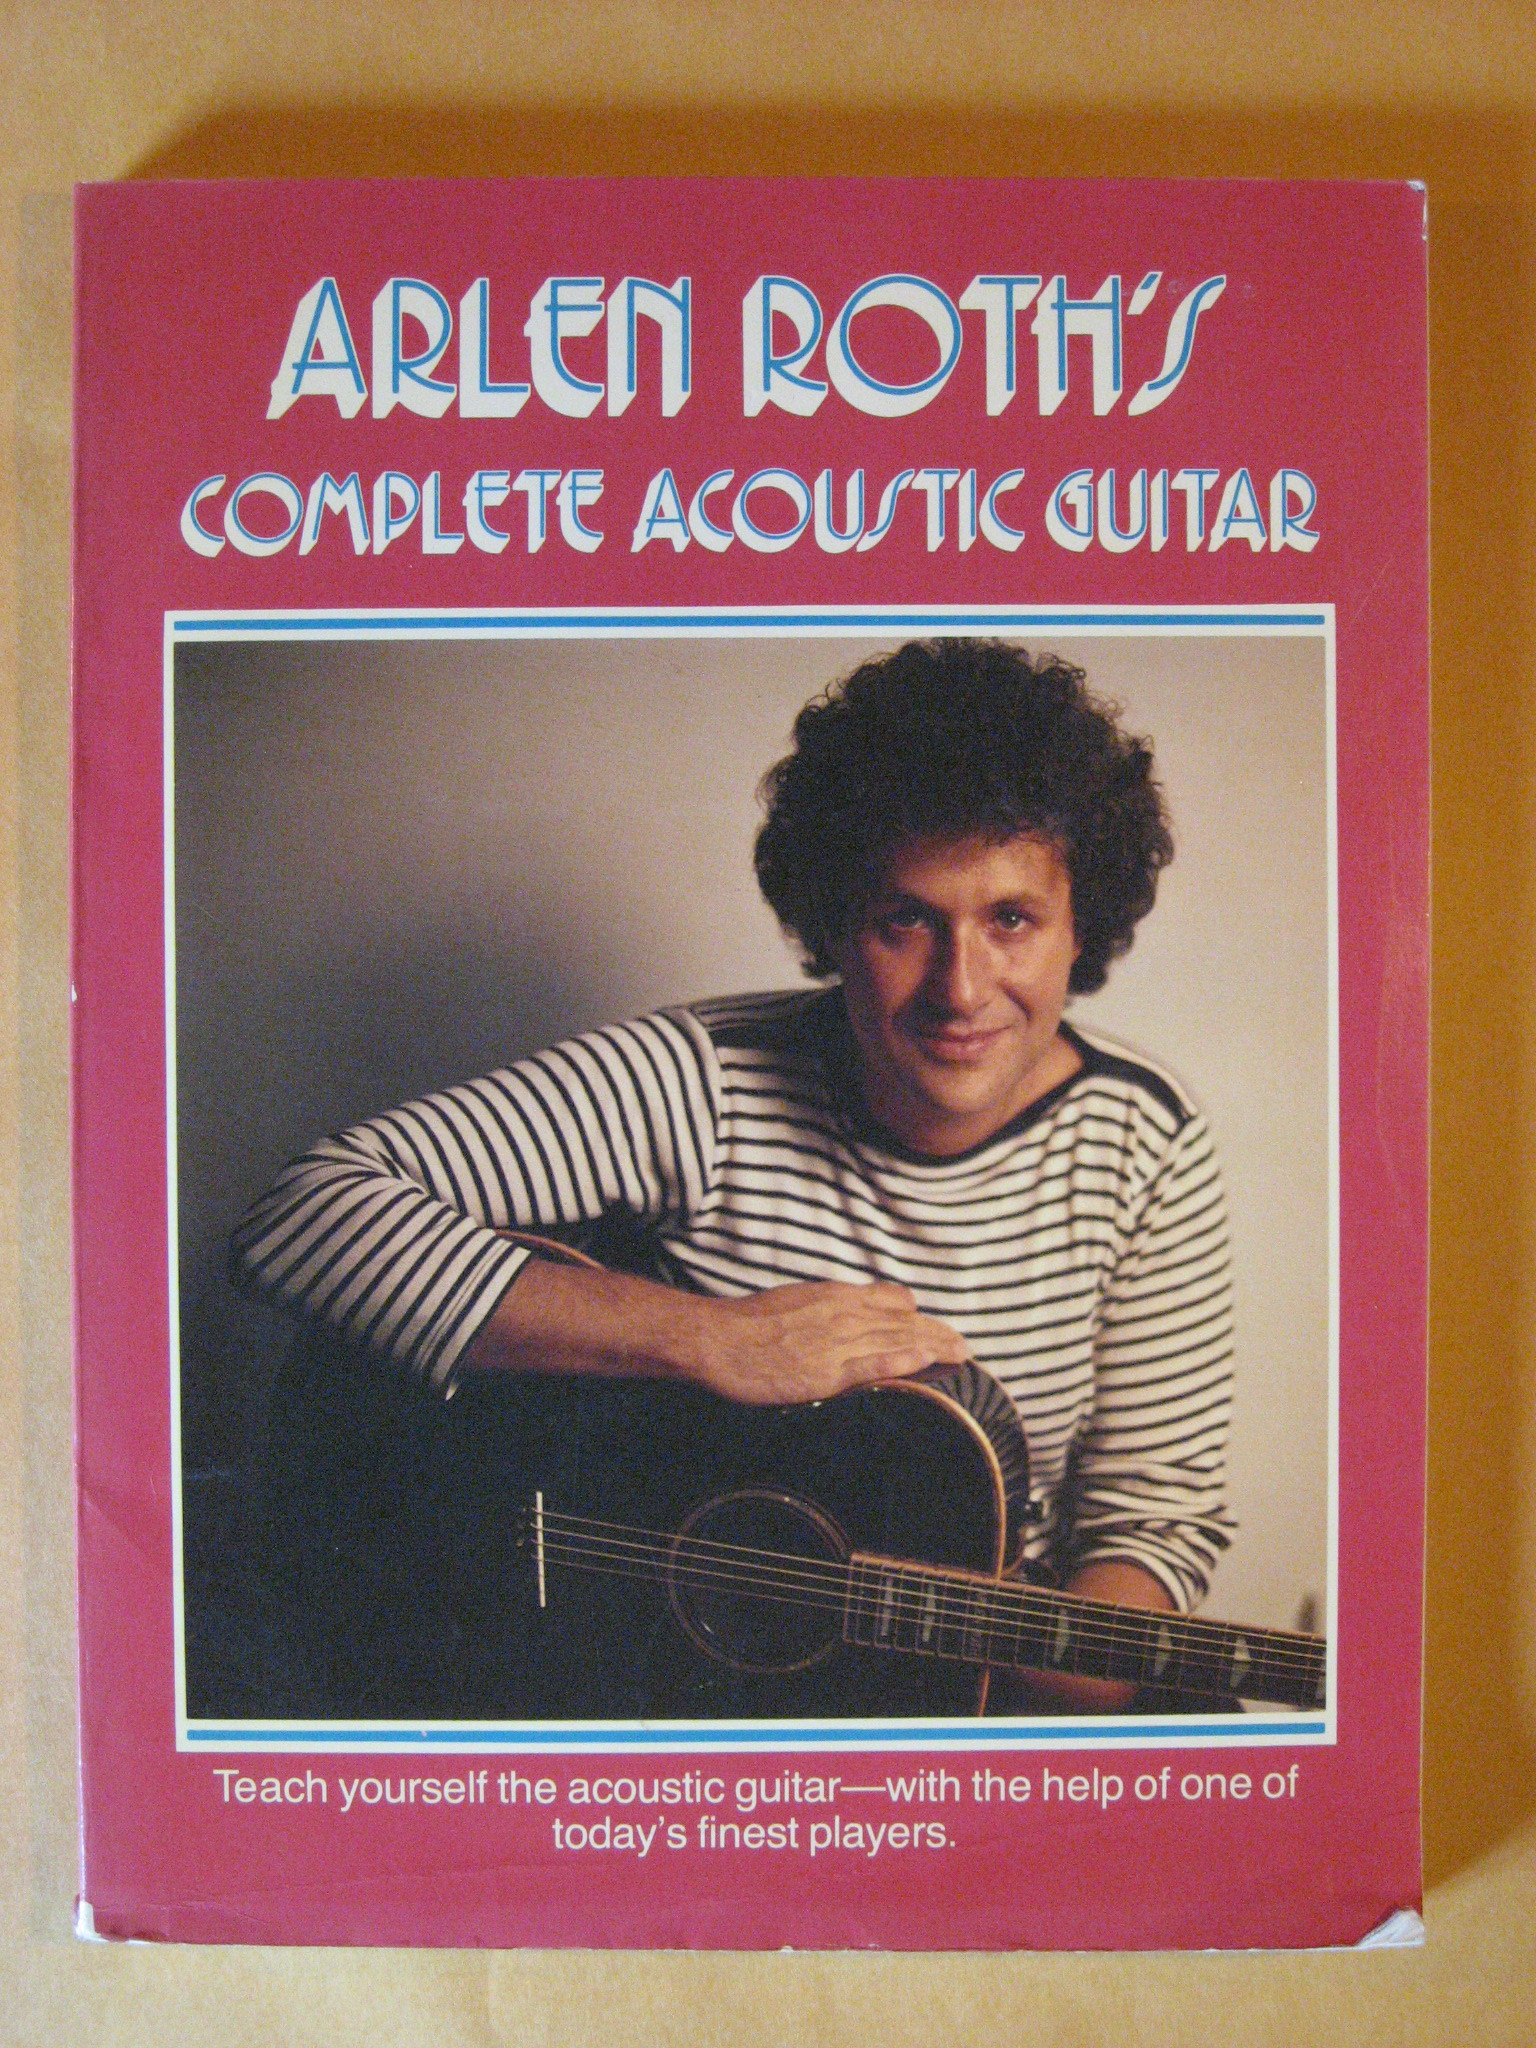 Arlen Roth Complete Acoustic Guitar